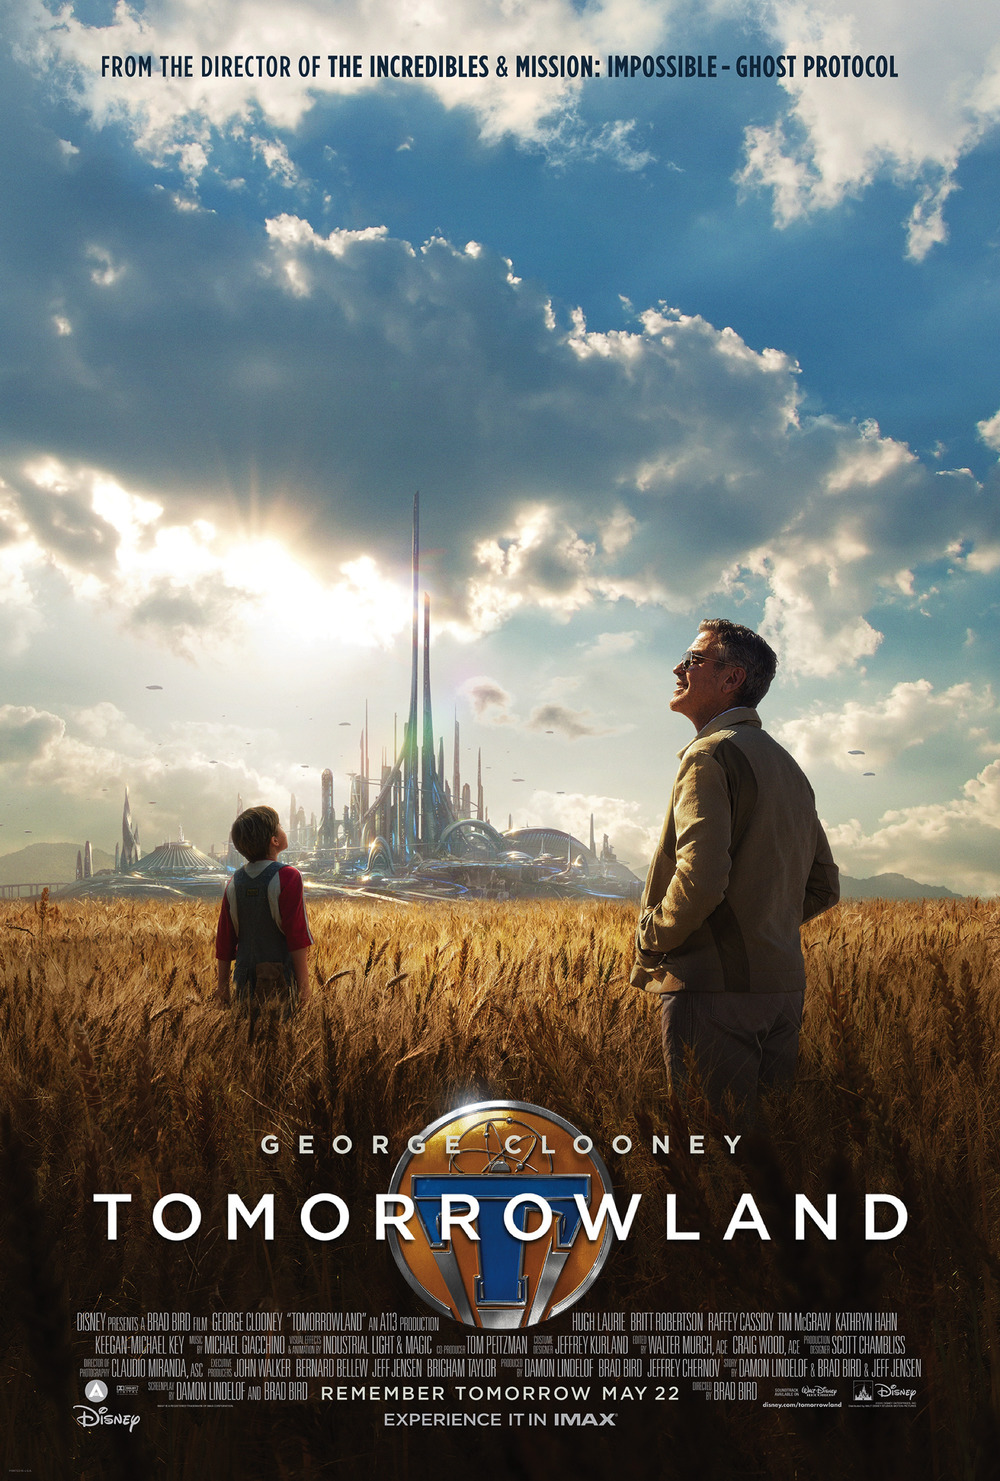 tomorrowland_film_poster.jpg